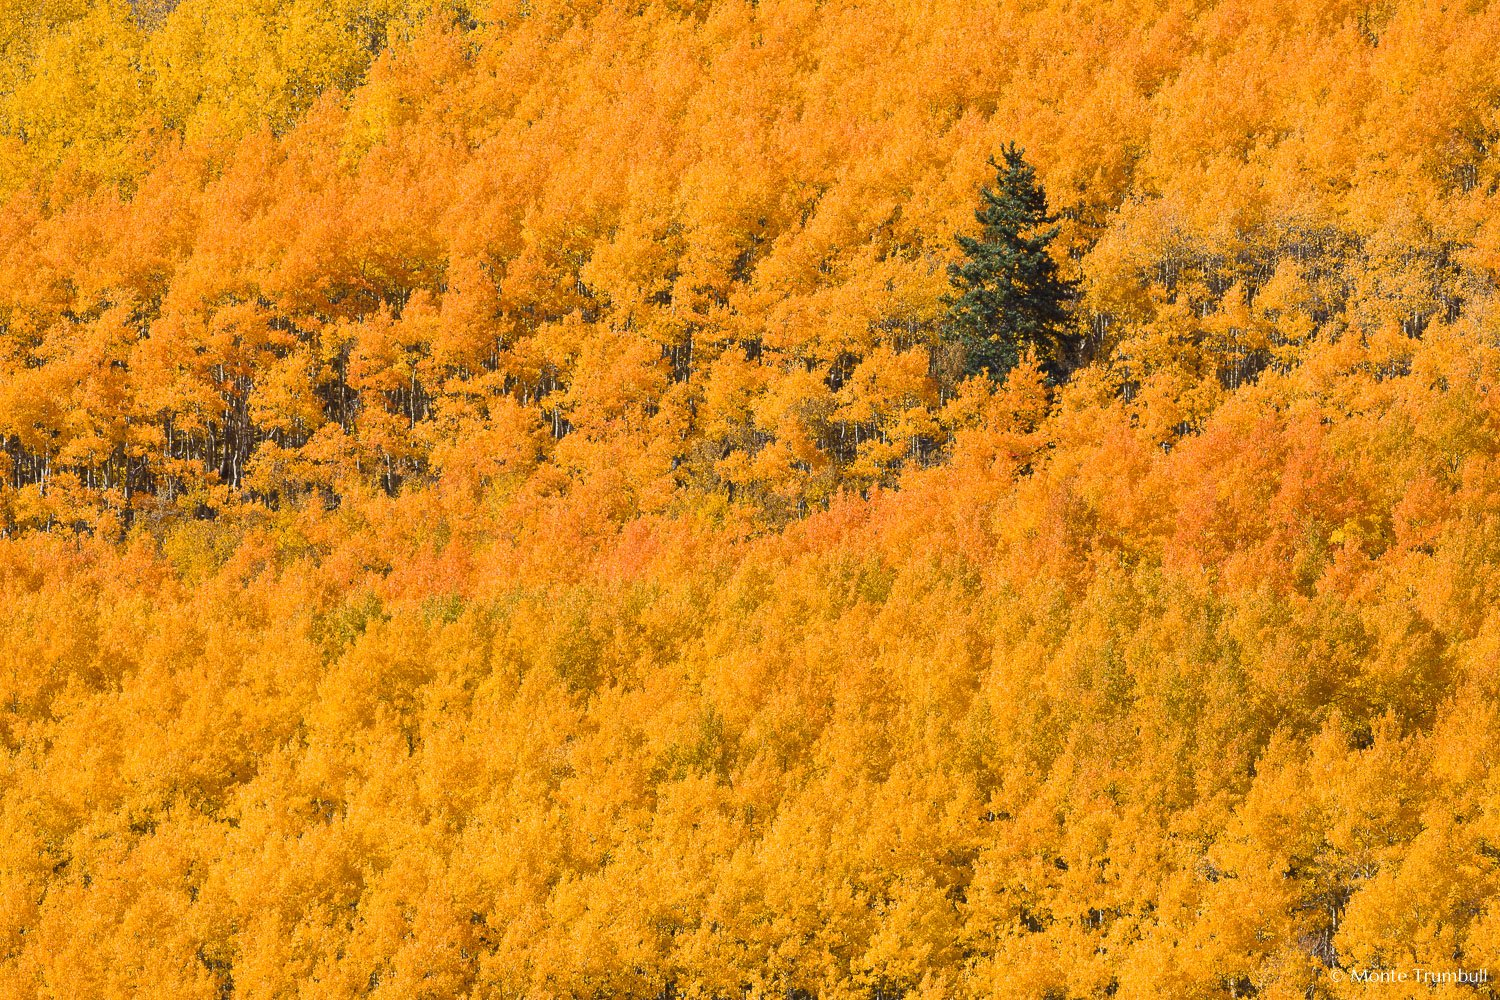 MT-20111003-144010-0032-Colorado-golden-orange-aspens.jpg